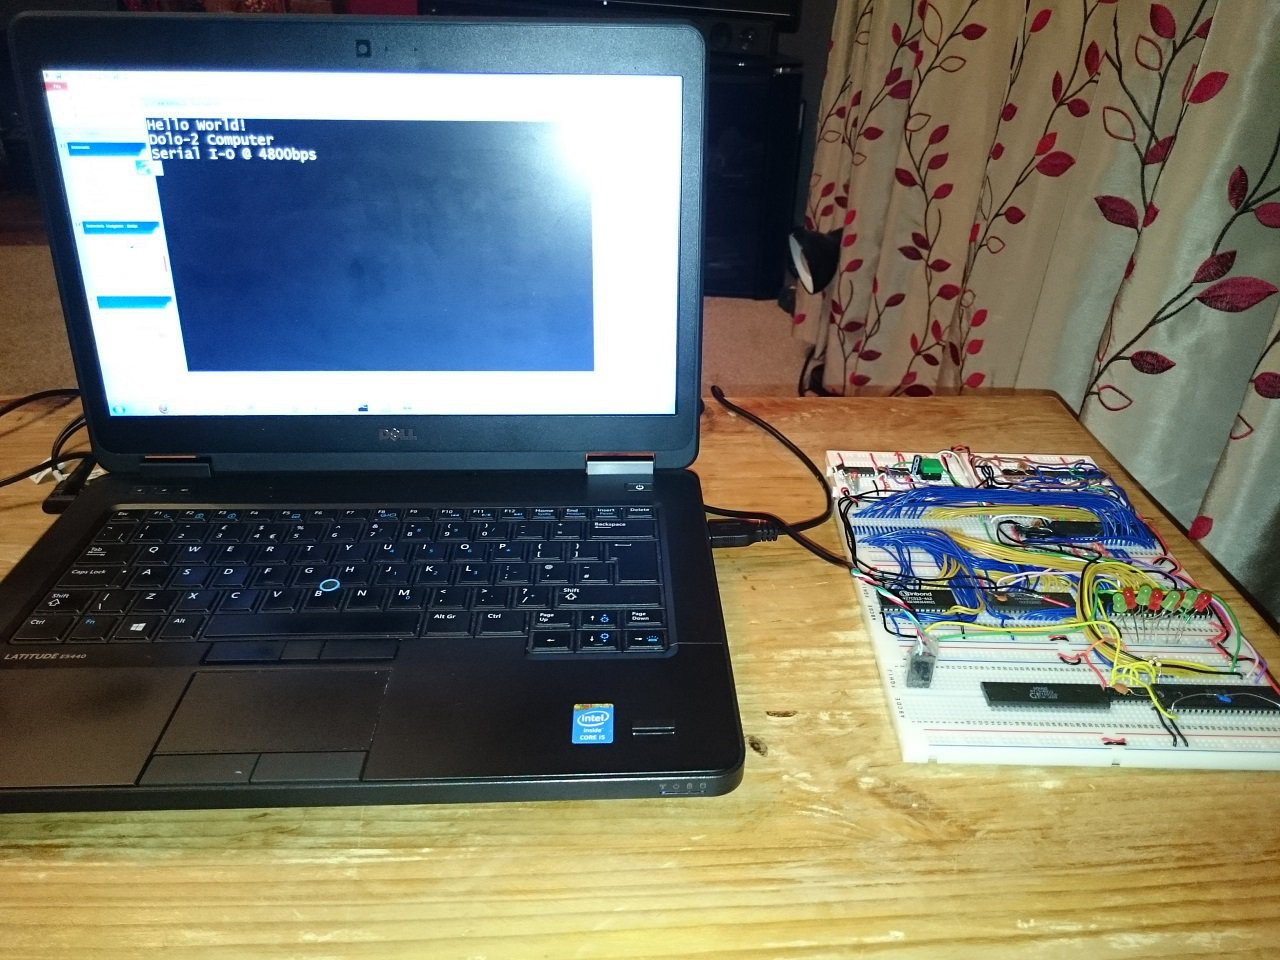 Project 6502 Homebrew Computer Myhobbytronicsblogspotcom 2012 10 555timedelaycircuithtml I Sent The Following Picture To My Friend Sadly He Passed Away Too Young When Was Explaining Basics Of What Had Got Going